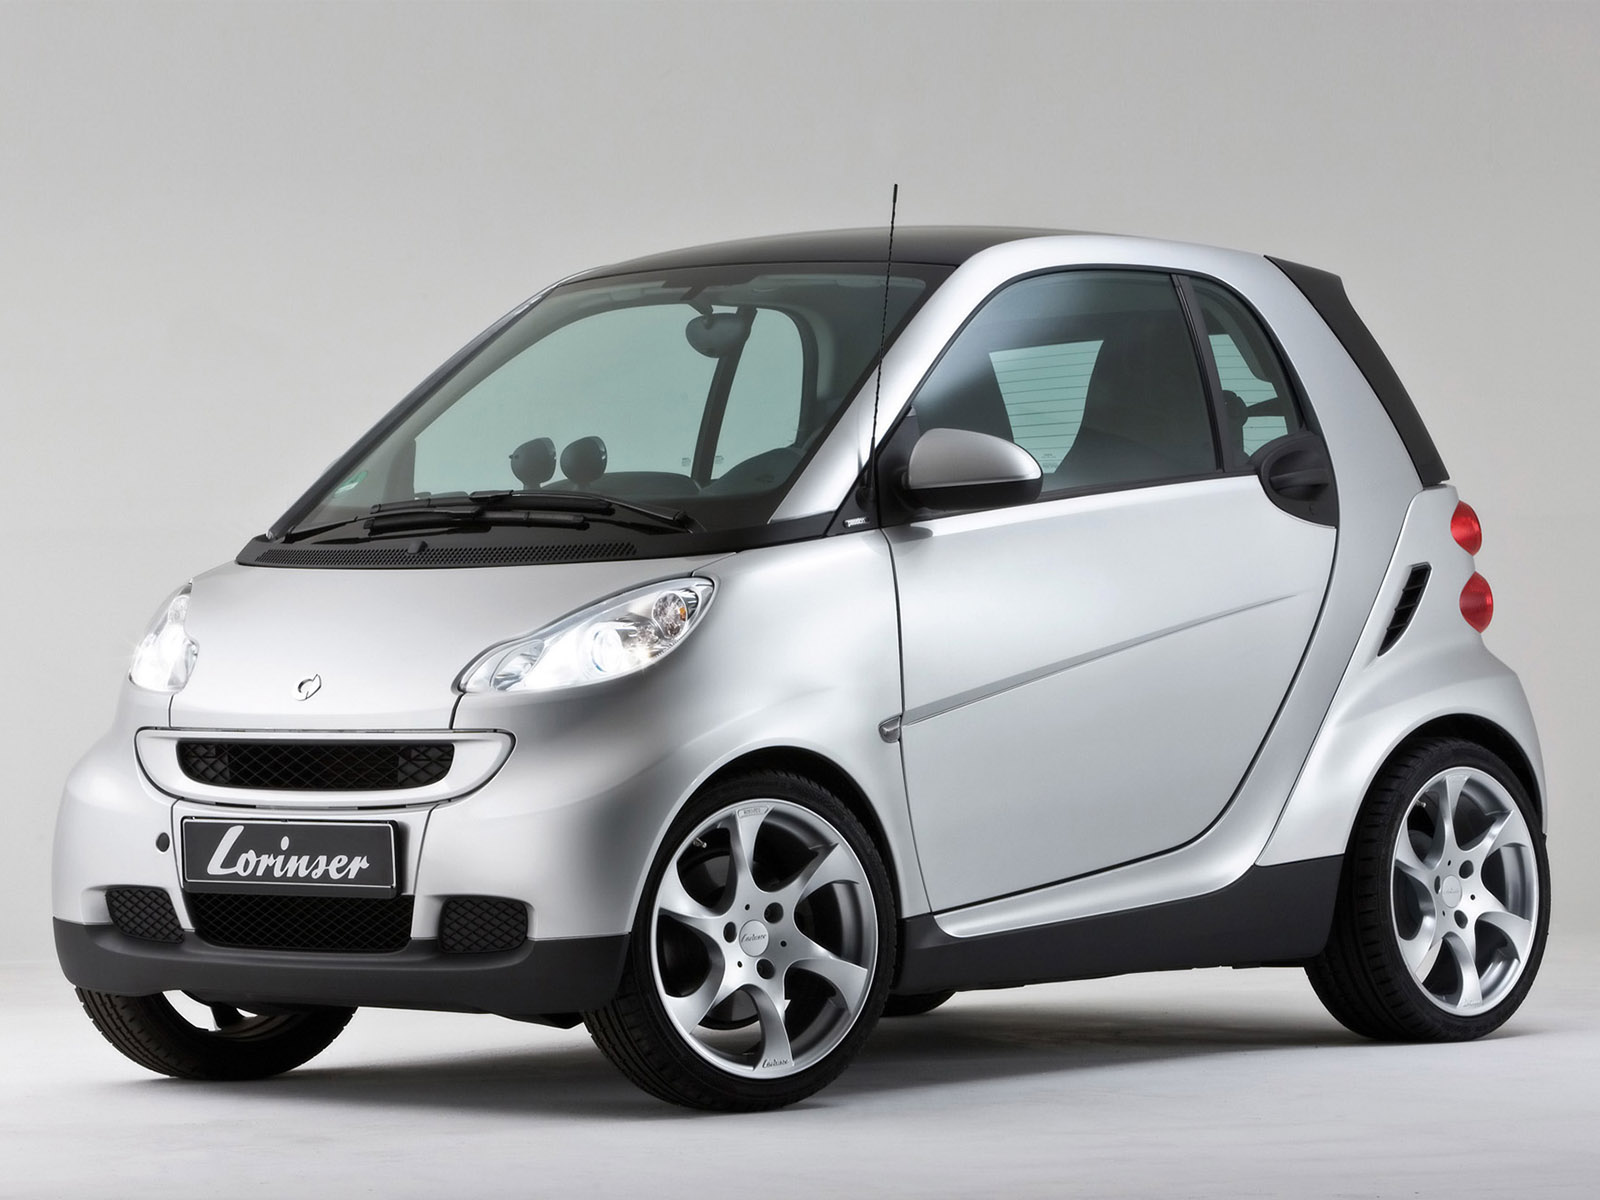 lorinser smart fortwo 2008 lorinser smart fortwo 2008 photo 2 car in pictures car photo gallery. Black Bedroom Furniture Sets. Home Design Ideas